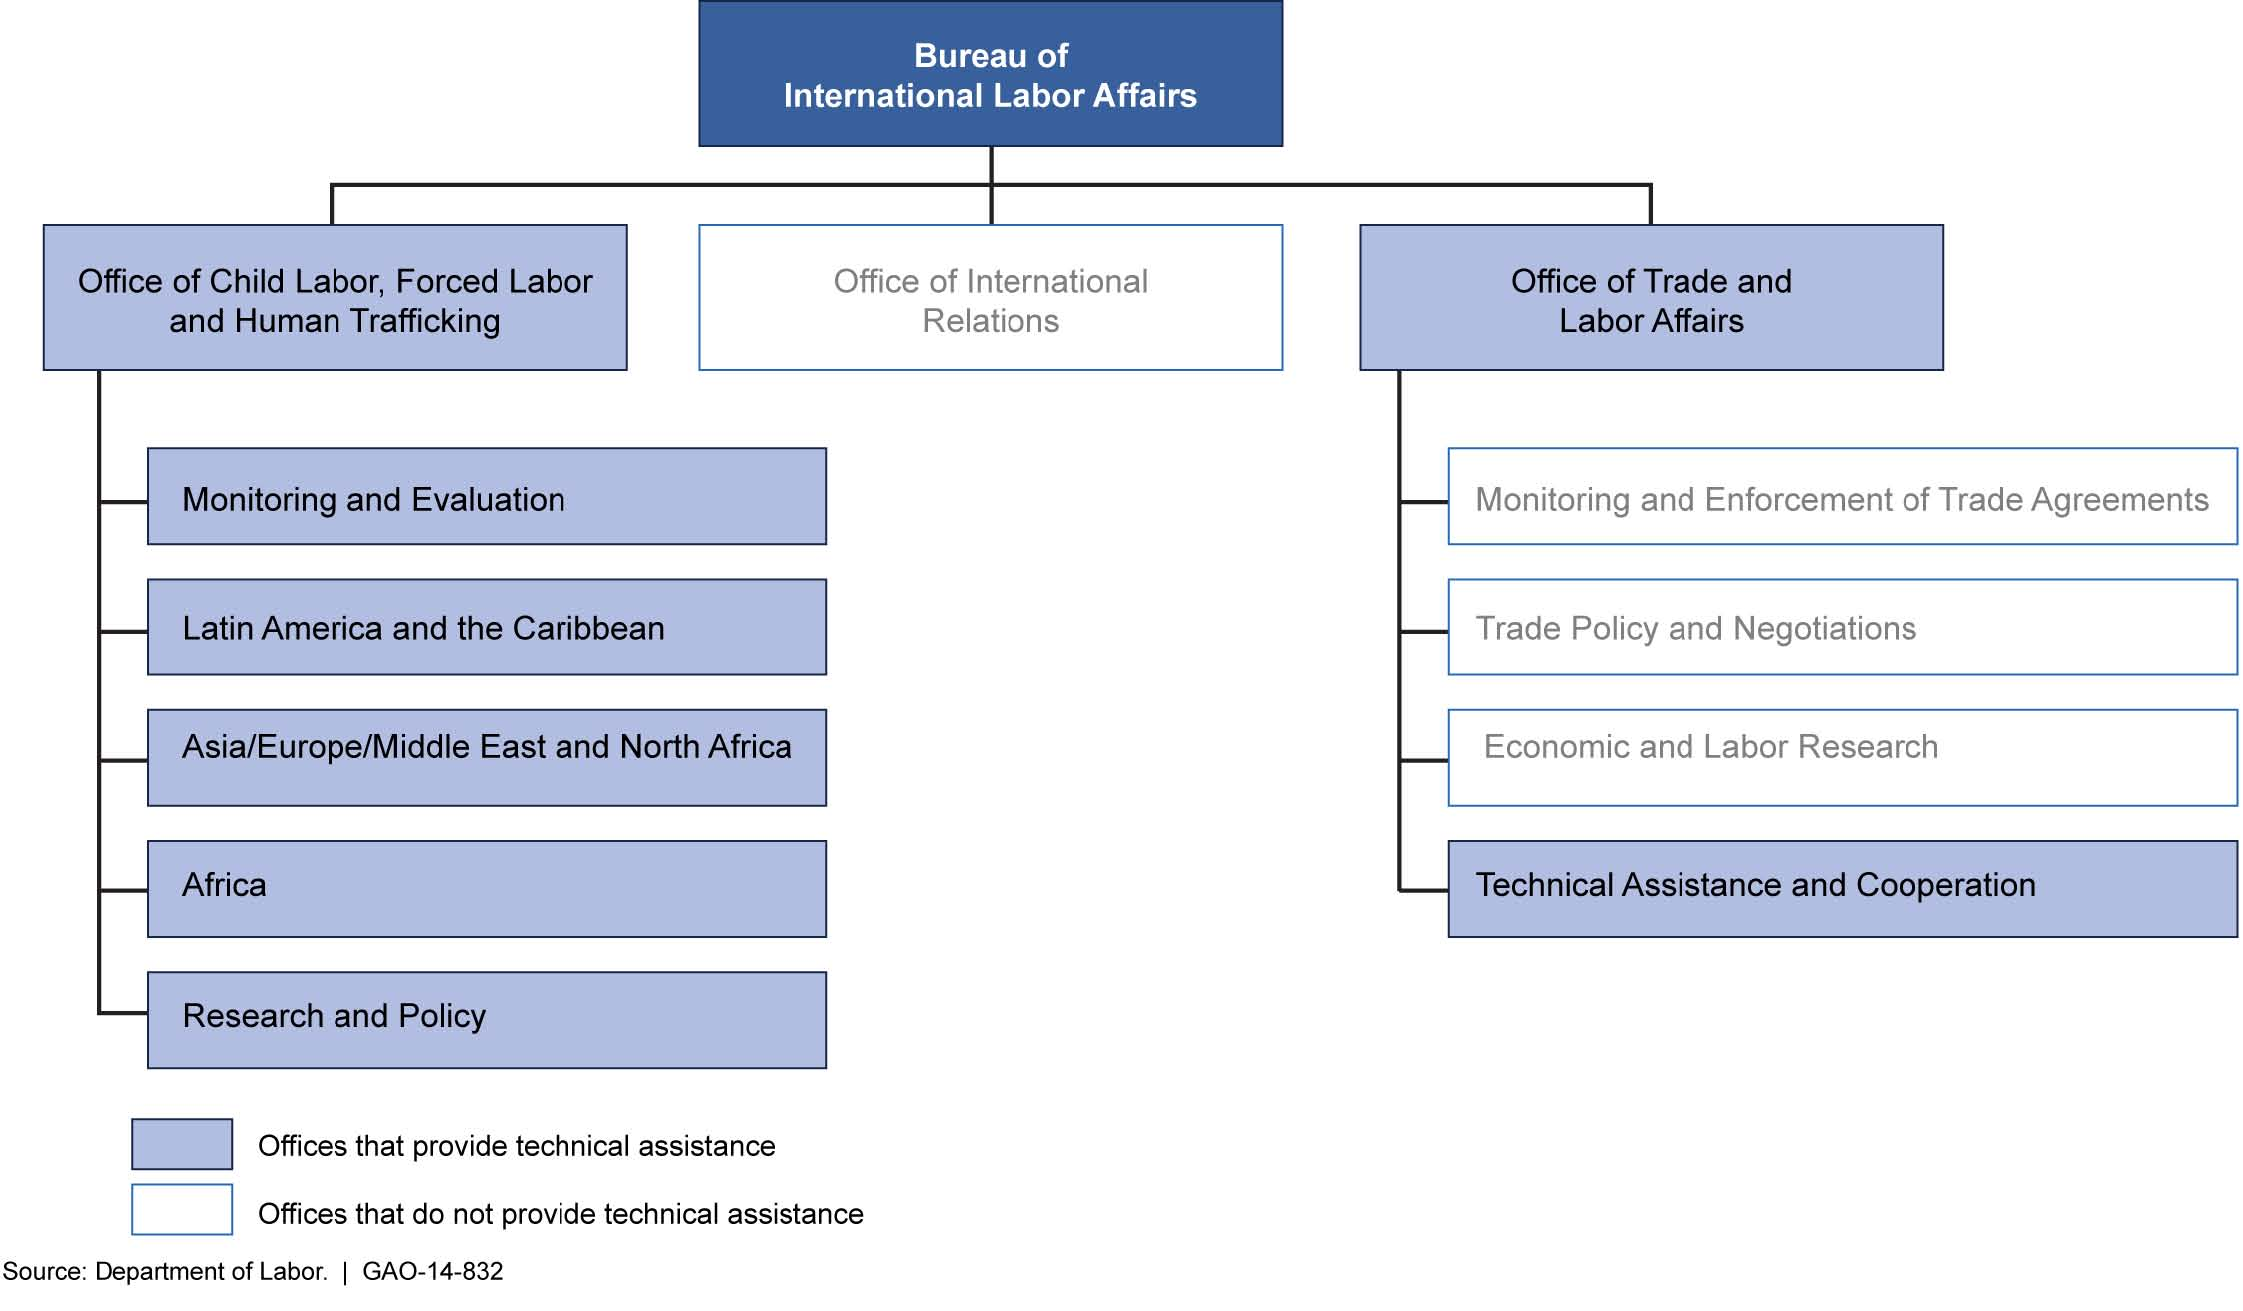 Microsoft Office Organizational Chart: Figure 1- Bureau of International Labor Affairs Organization ,Chart